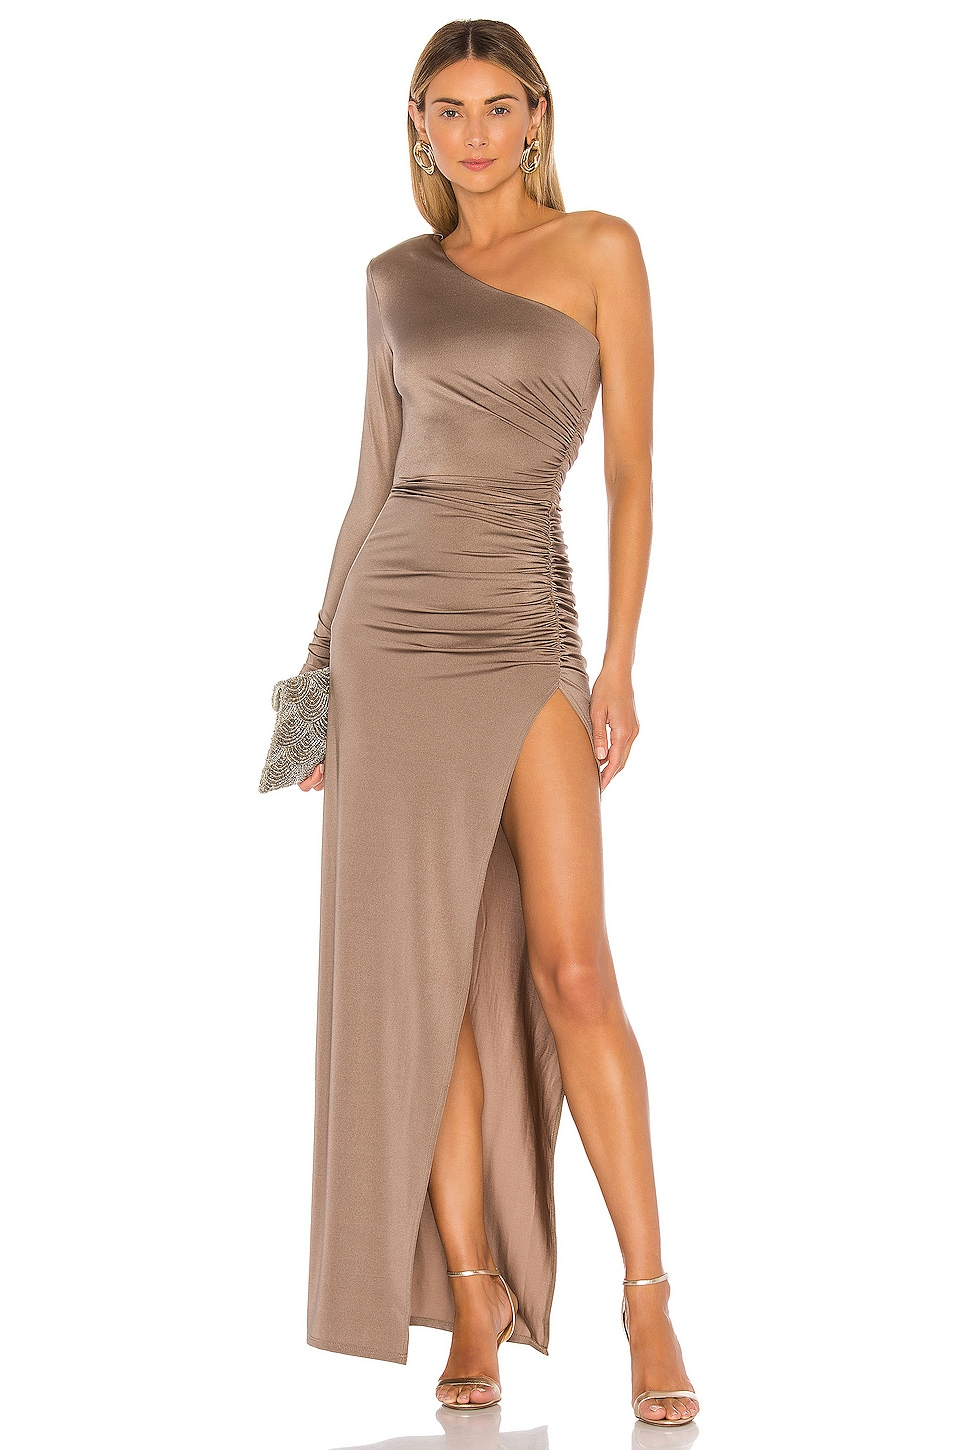 x REVOLVE Gilly Maxi Dress             Michael Costello                                                                                                       CA$ 249.97 12